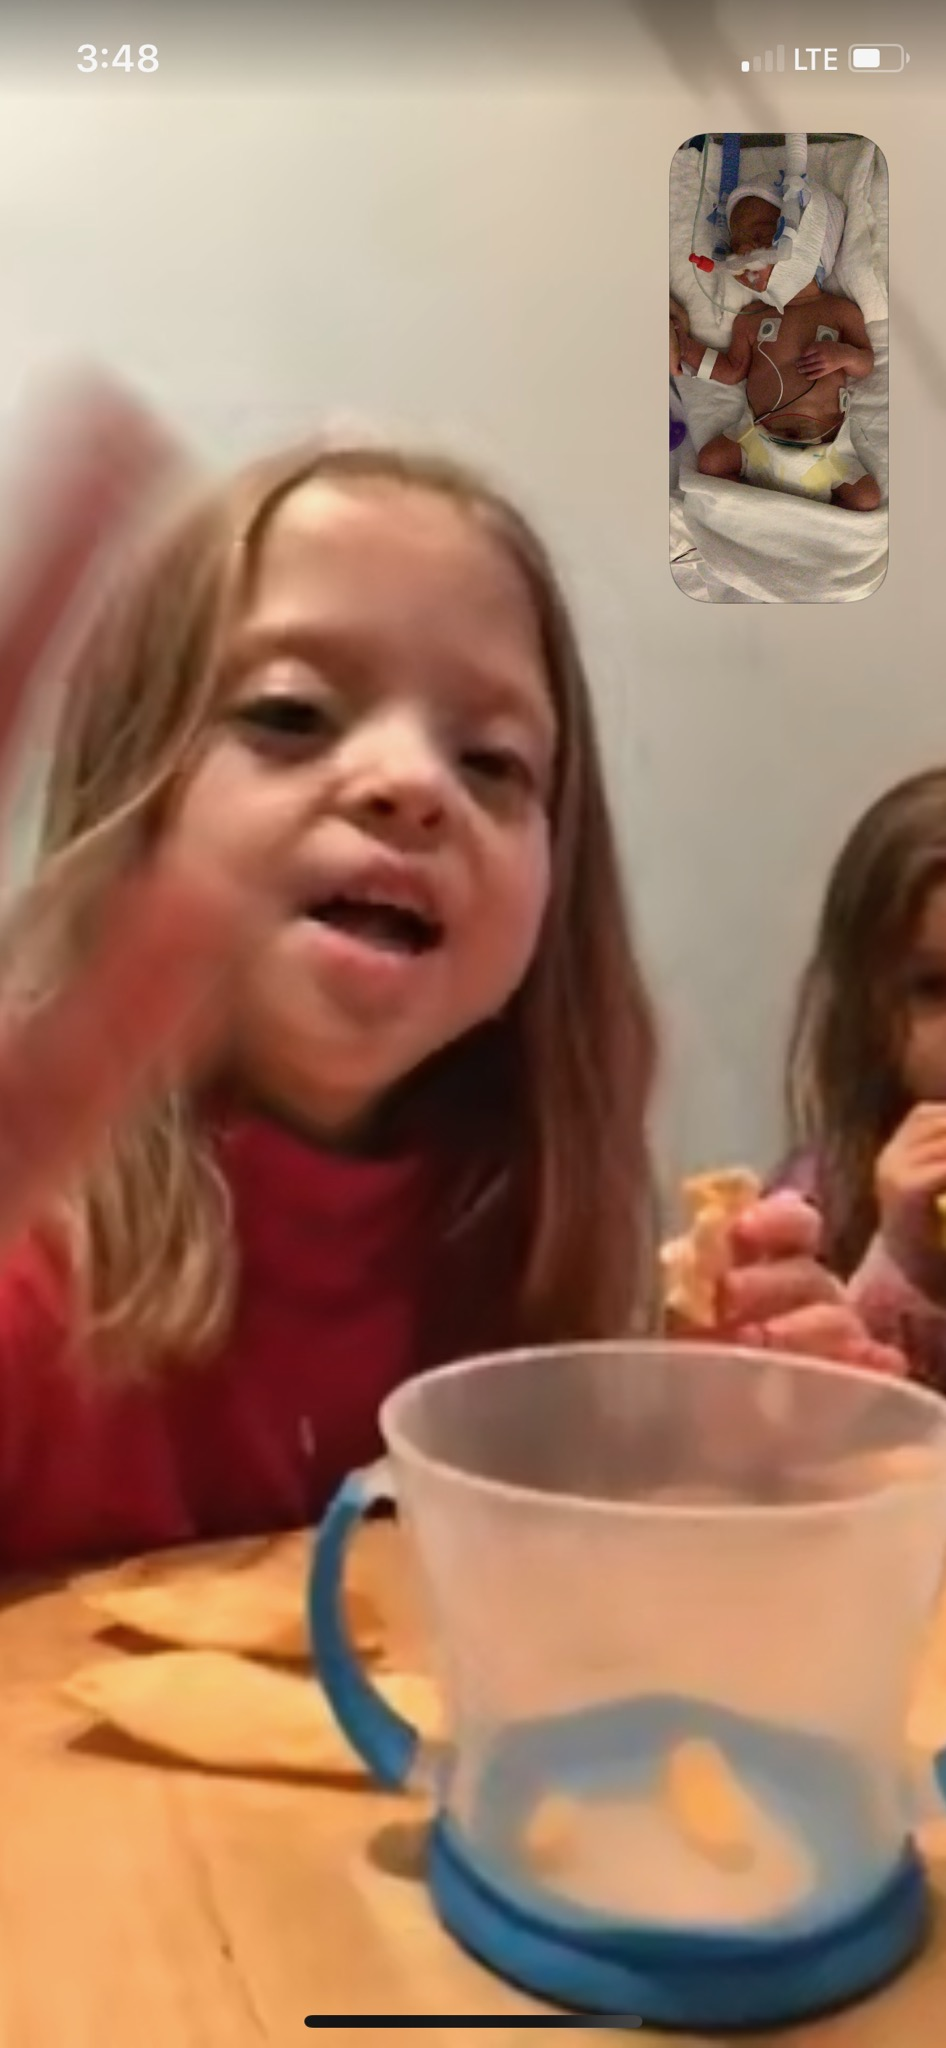 Big sis saying hi to her little sis thanks to technology. Hoping they'll get to meet later this week in person.